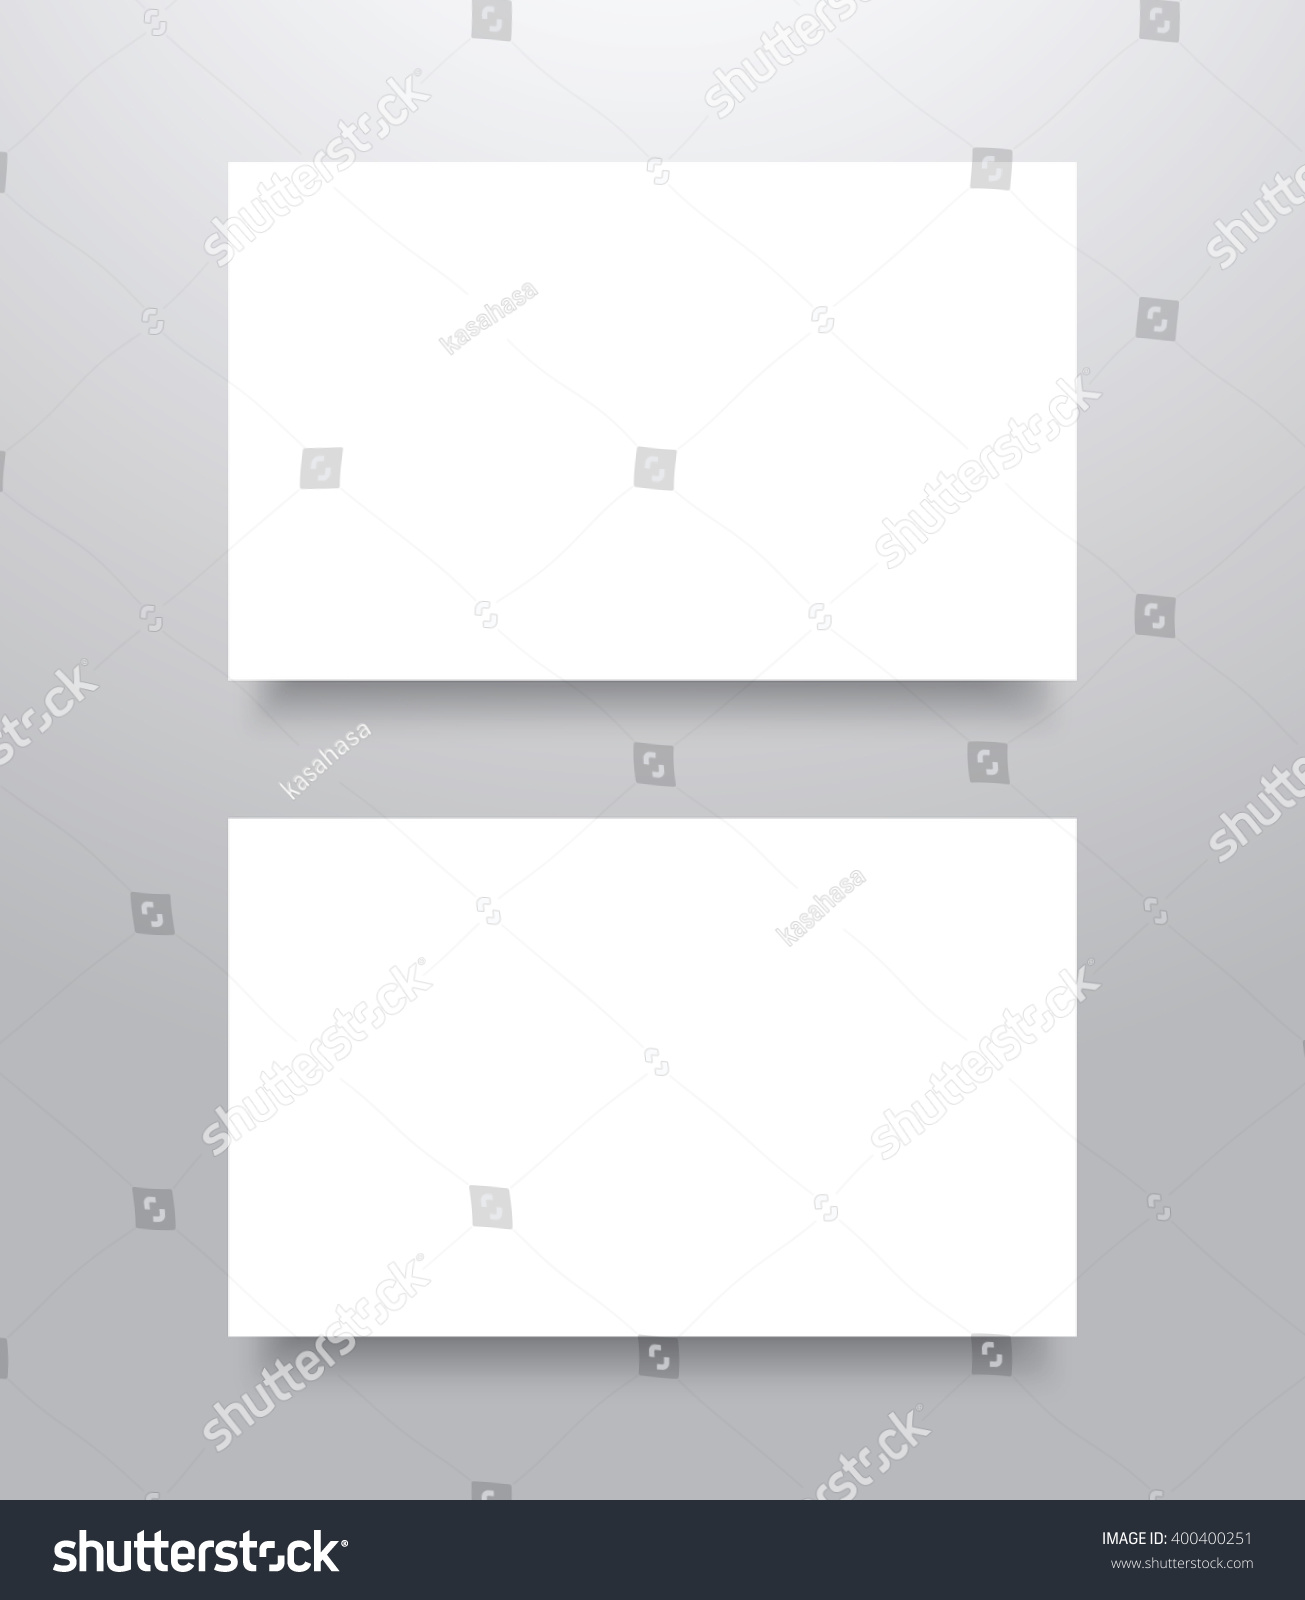 Blank business card mockup template shadow stock vector 400400251 blank business card mockup template shadow stock vector 400400251 shutterstock reheart Images